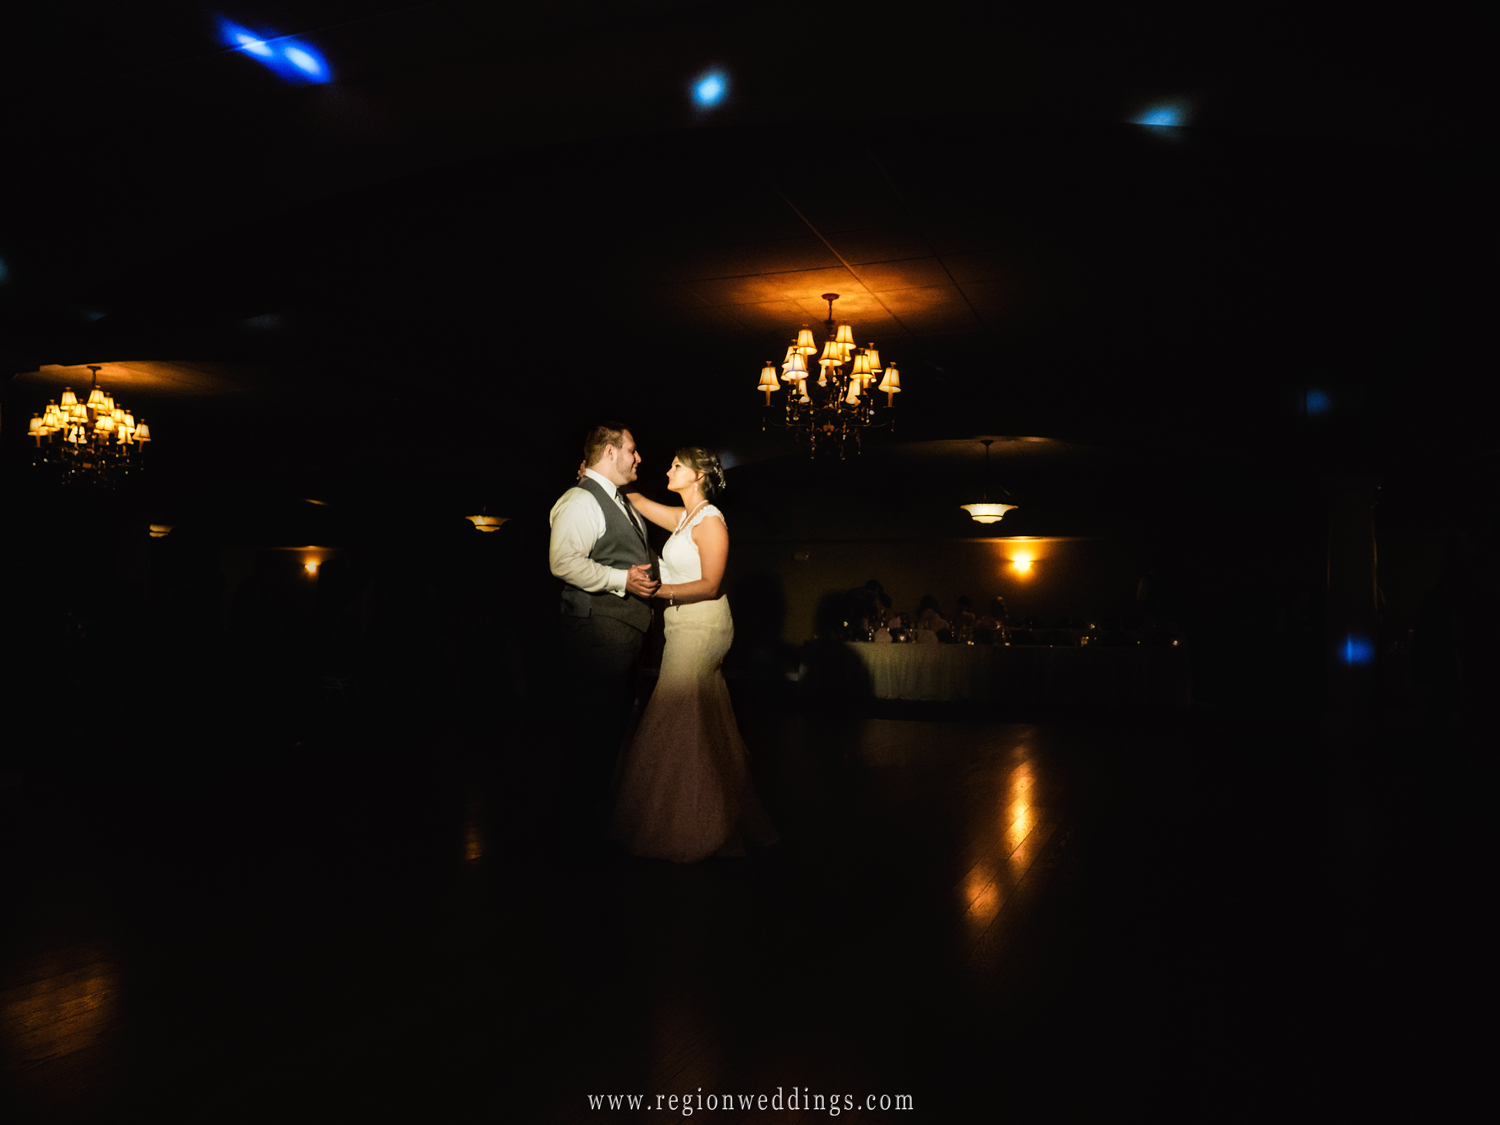 First dance for the bride and groom at Trinity Banquet Room at St. Patrick's Parish.